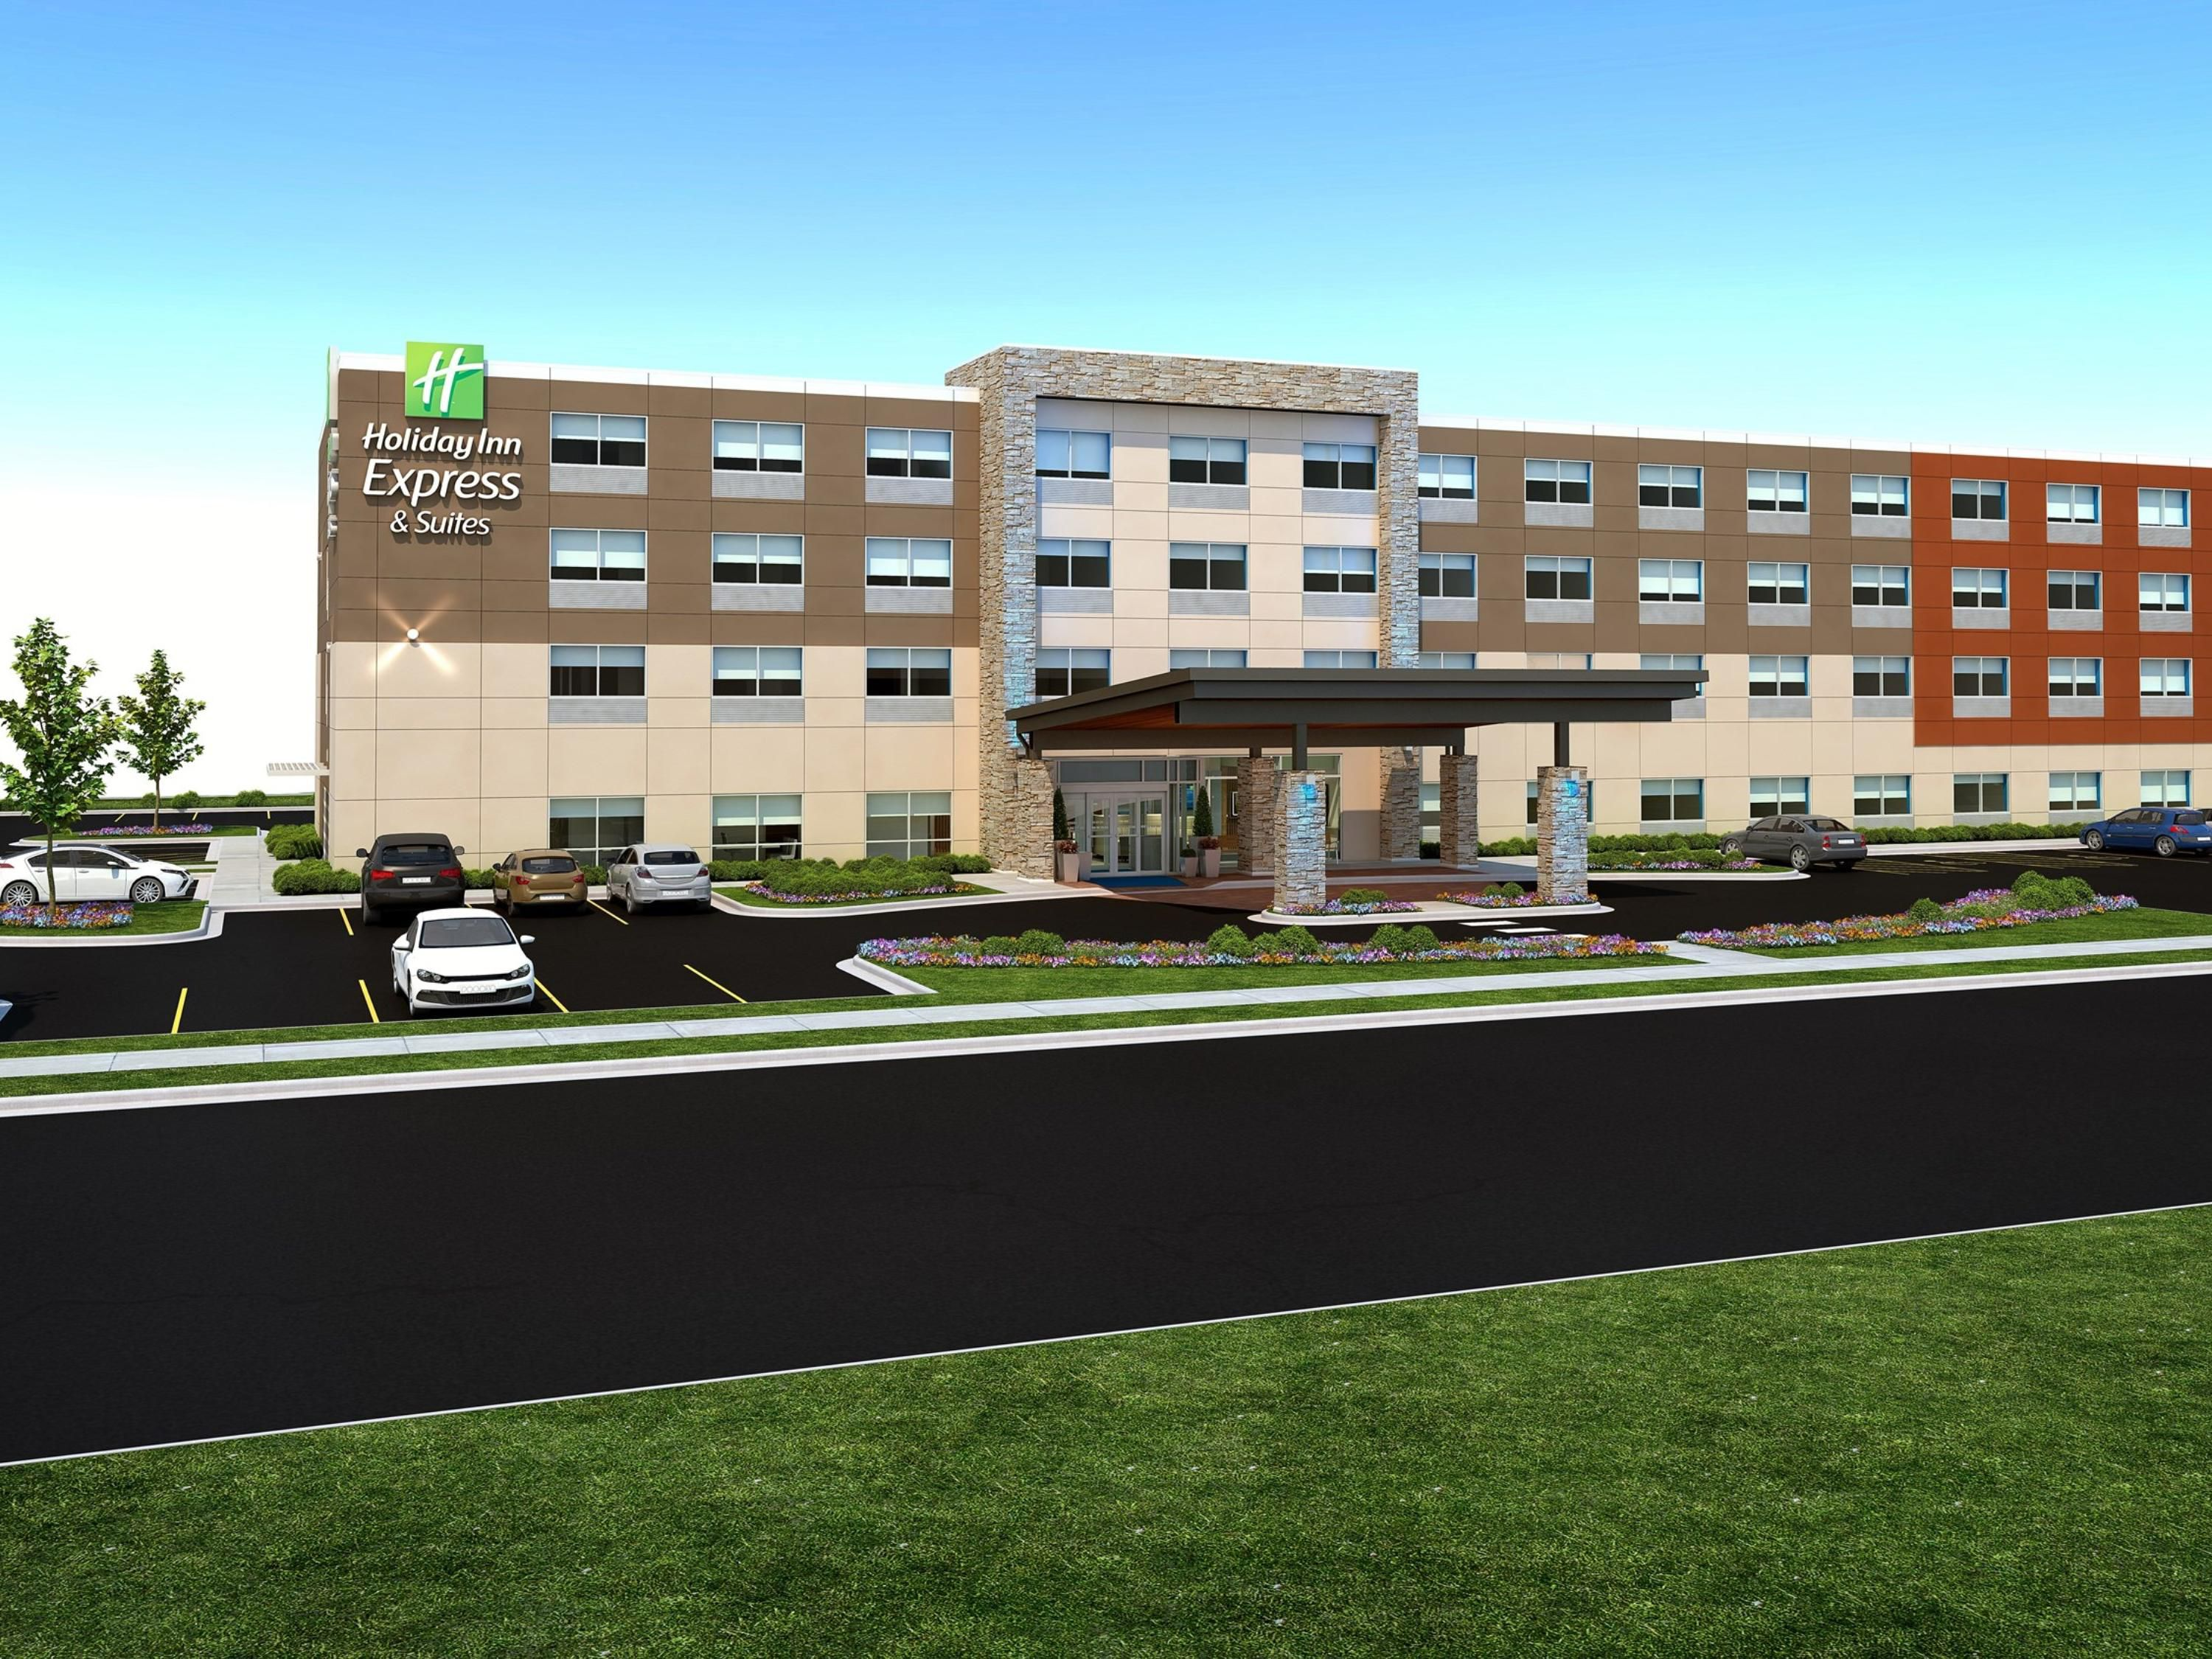 Holiday Inn Express Suites Cincinnati North Liberty Way Hotel By Ihg